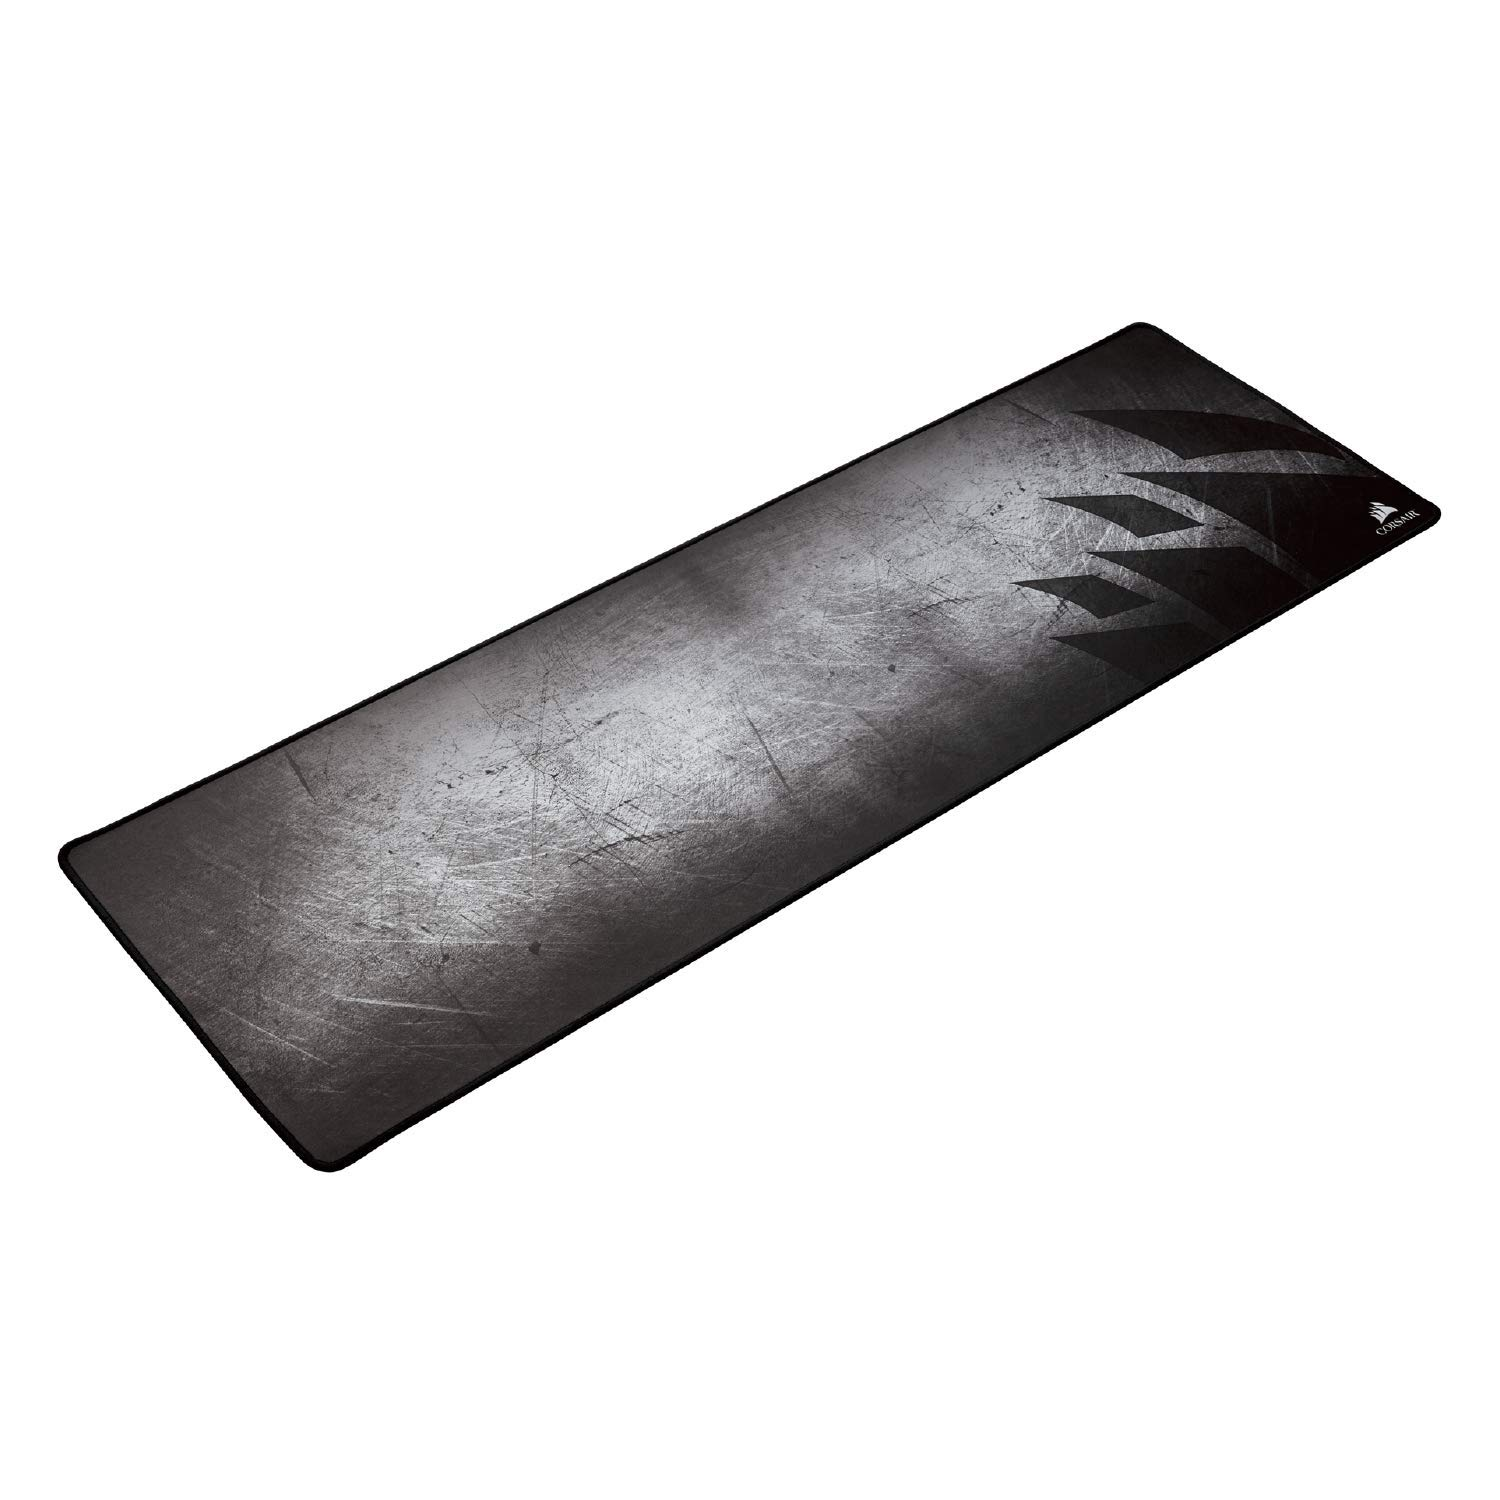 Corsair MM300 - Anti-Fray Cloth Gaming Mouse Pad - High-Performance Mouse Pad Optimized for Gaming Sensors - Designed for Maximum Control - Extended (CH-9000108-WW)